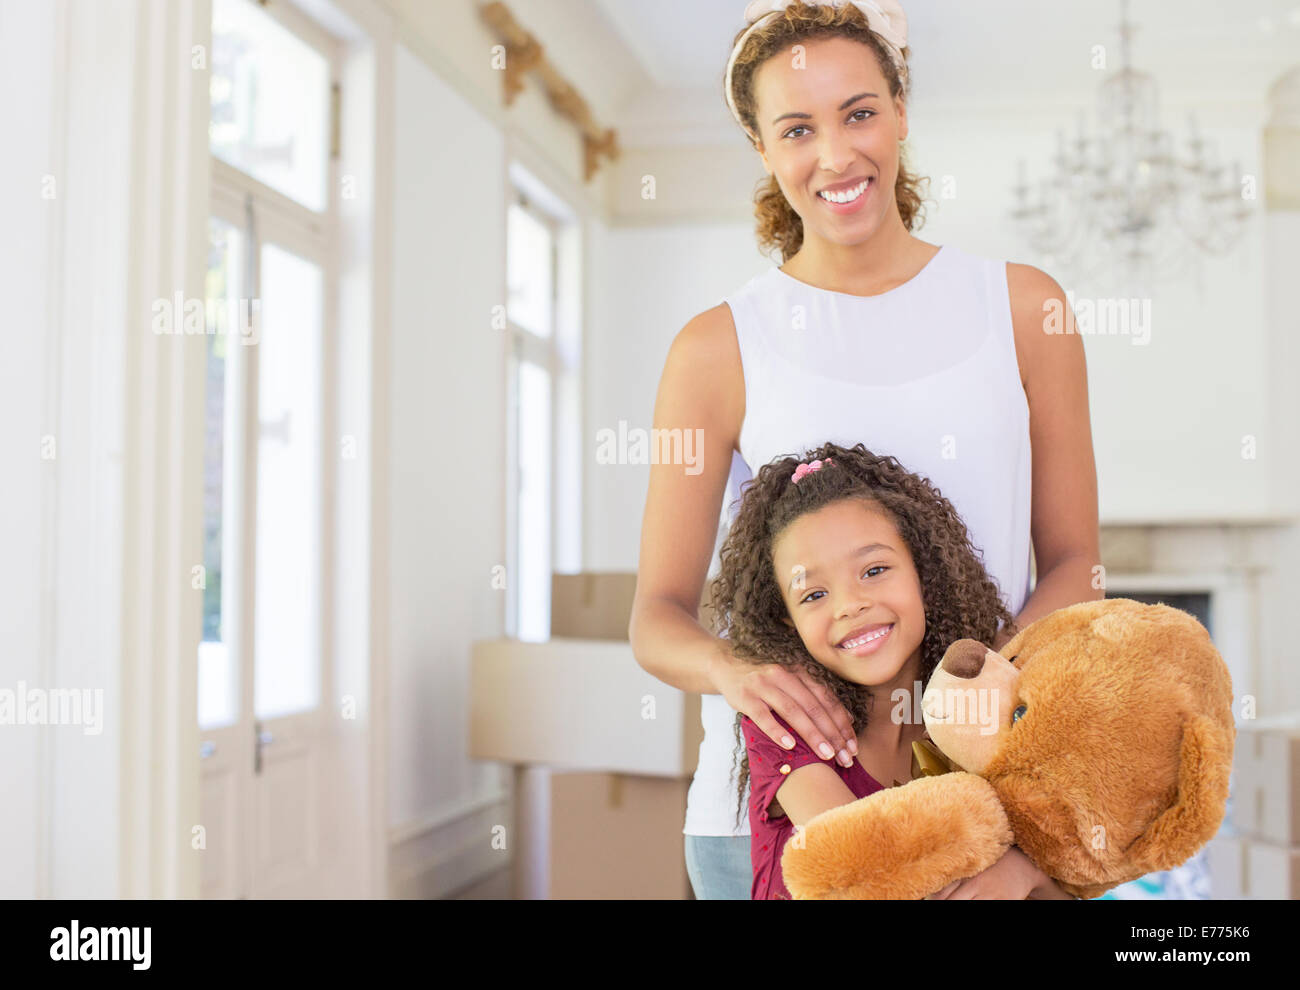 Mother and daughter smiling while clutching teddy bear - Stock Image